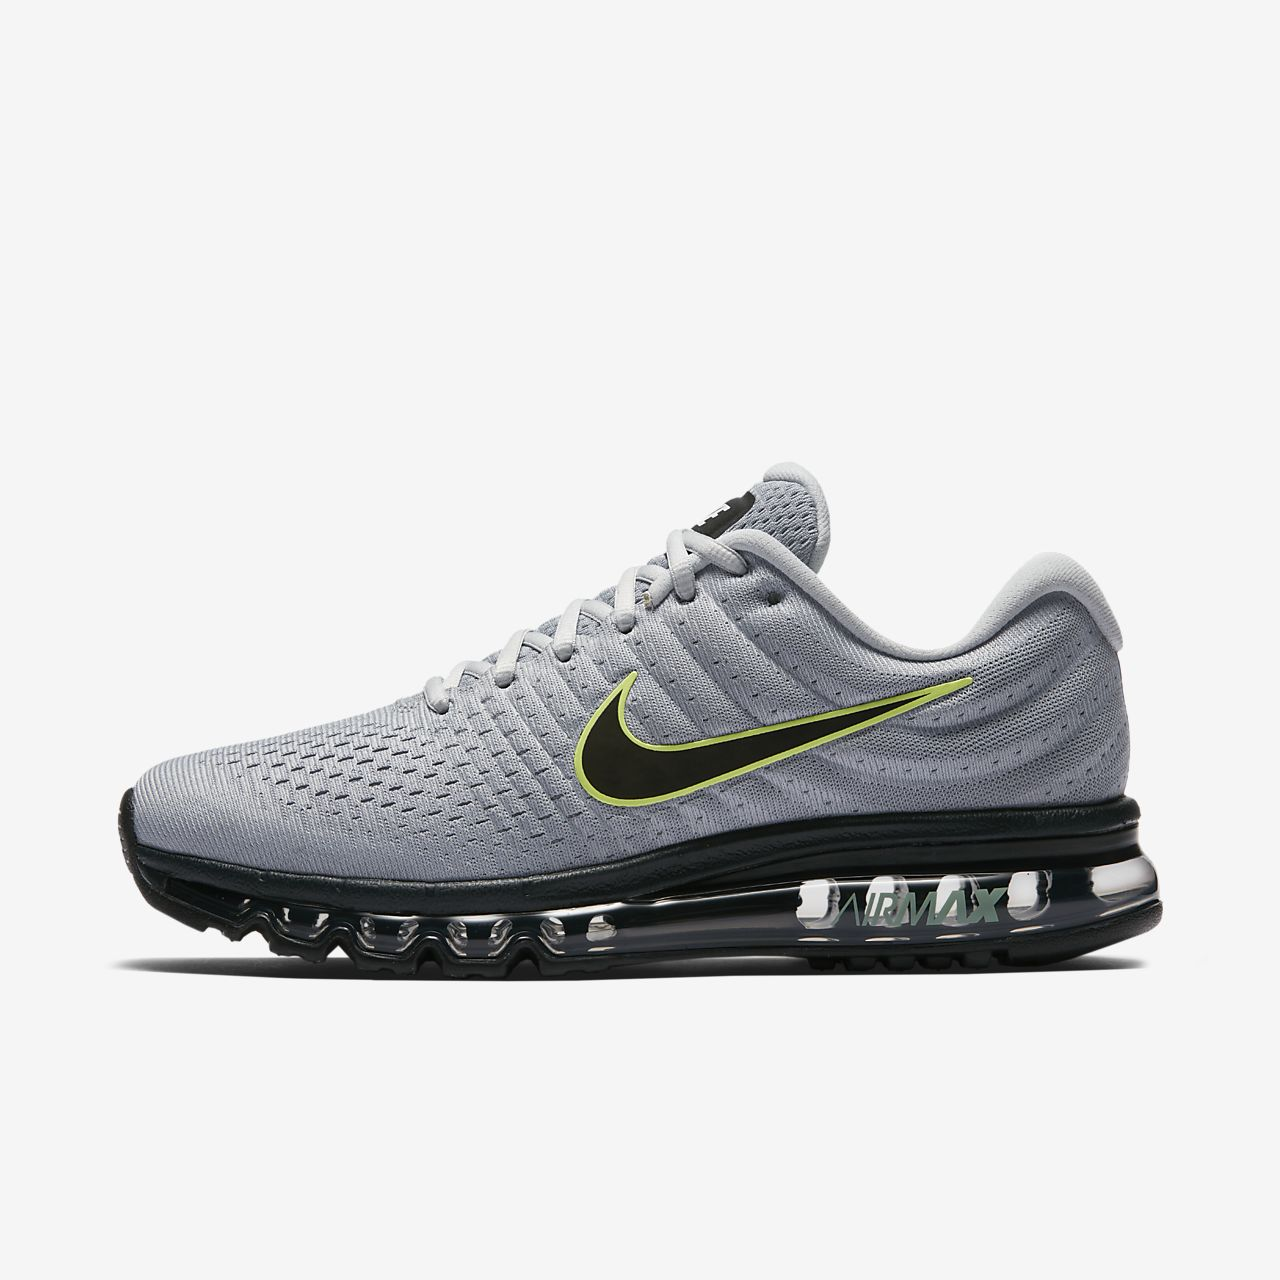 26f4f5b5d14c Nike Air Max 2017 Men s Shoe. Nike.com NO